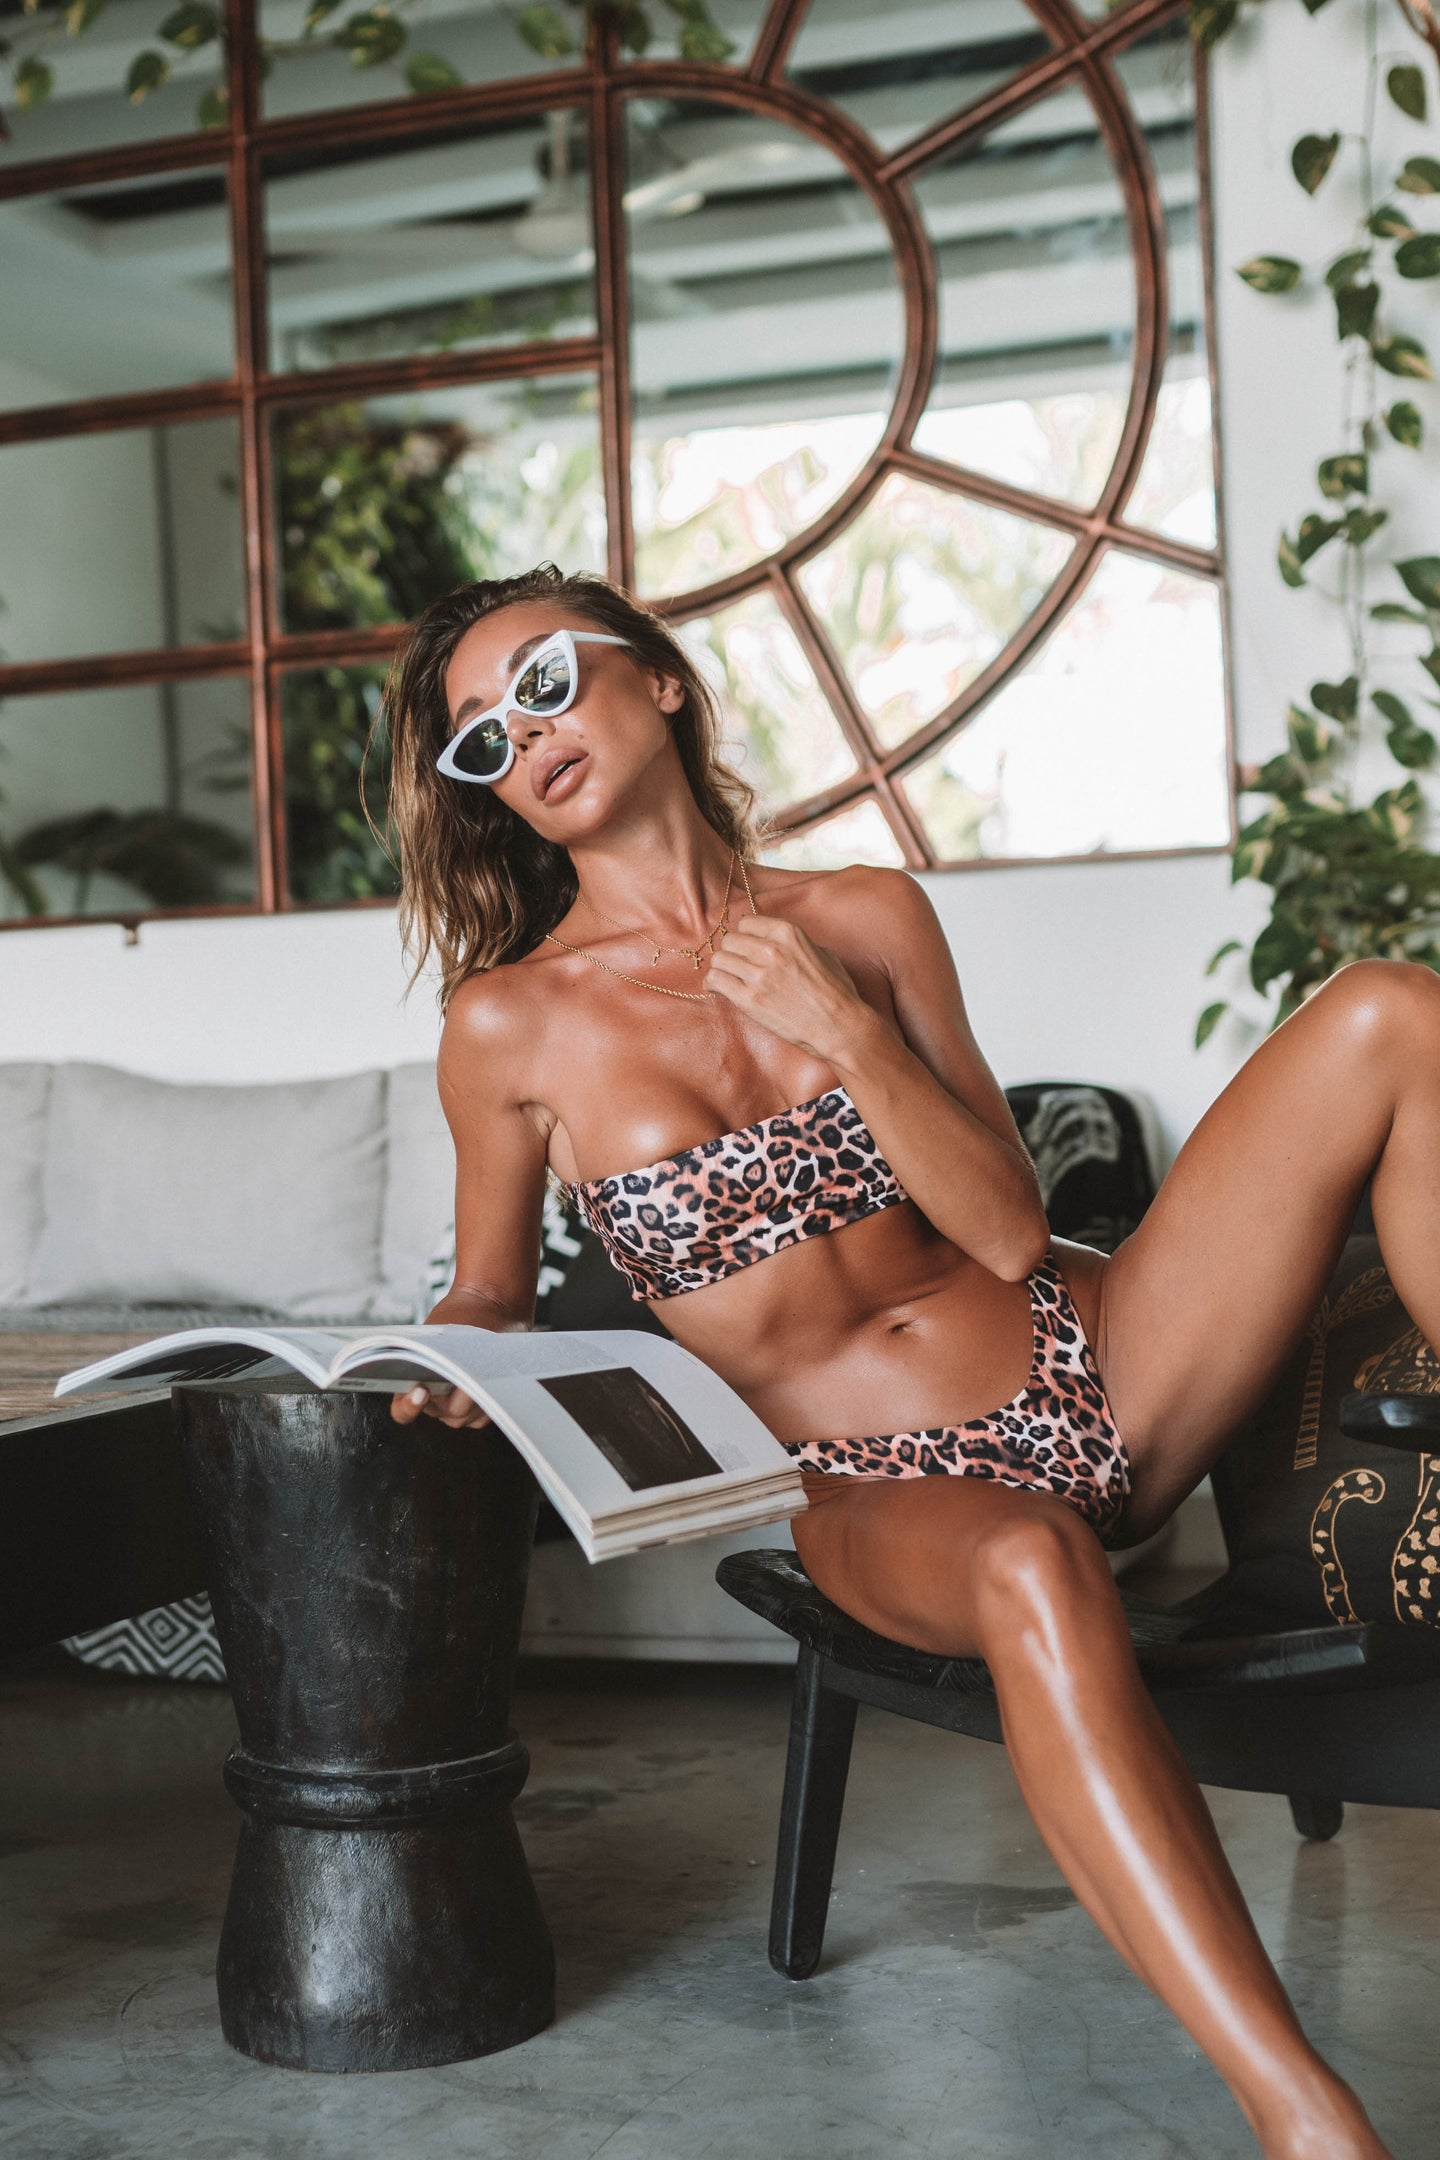 The Leopard Cheeky Bikini Bottom